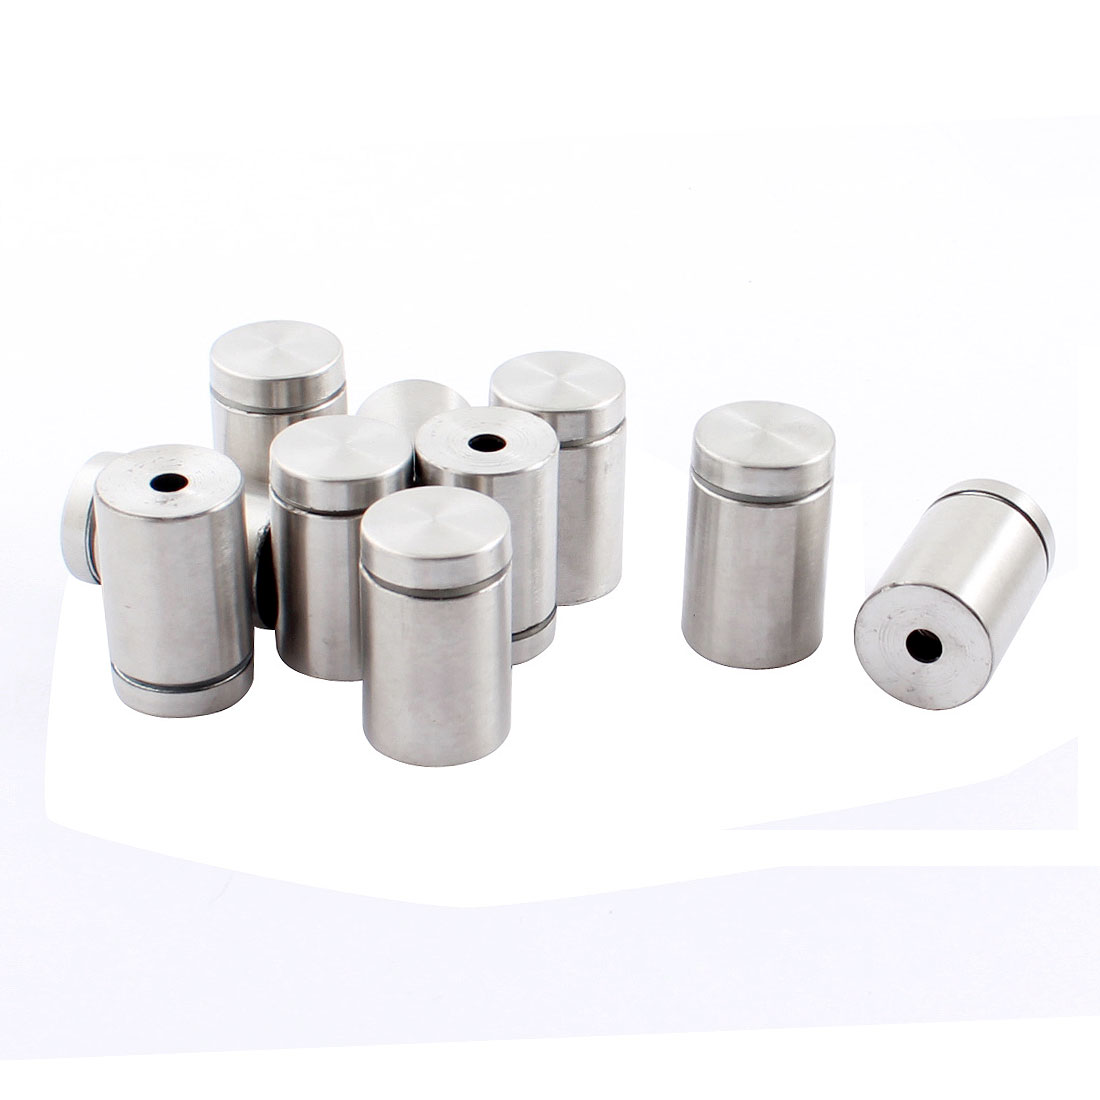 10 Pcs 19mm x 30mm Stainless Steel Standoff Clamp Hardware for Glass